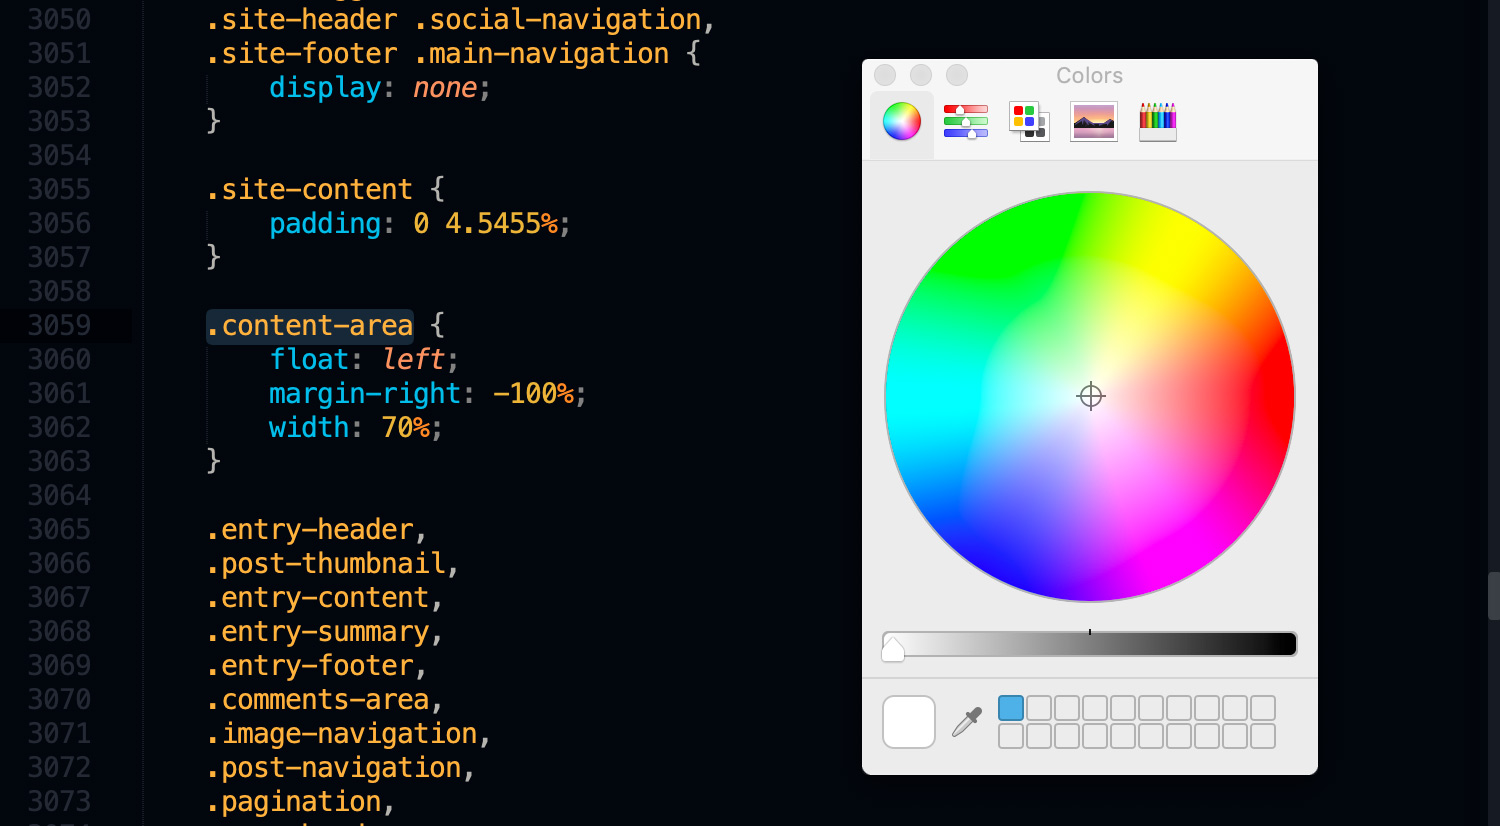 Sublime Textパッケージ「Color​Picker」